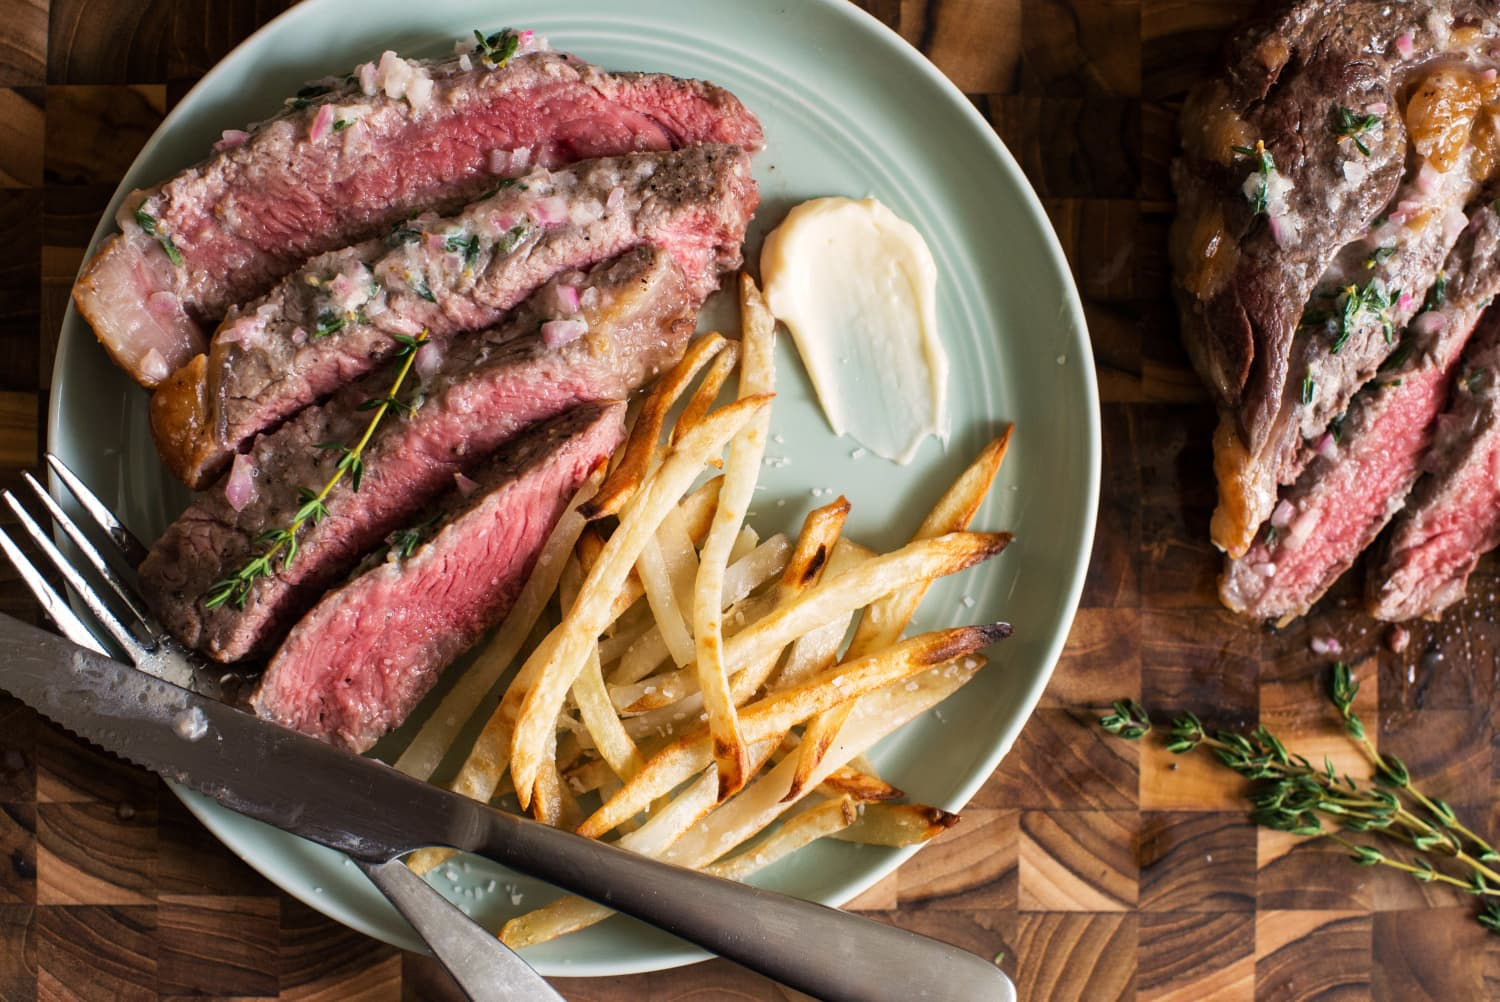 How To Make Sheet Pan Steak Frites